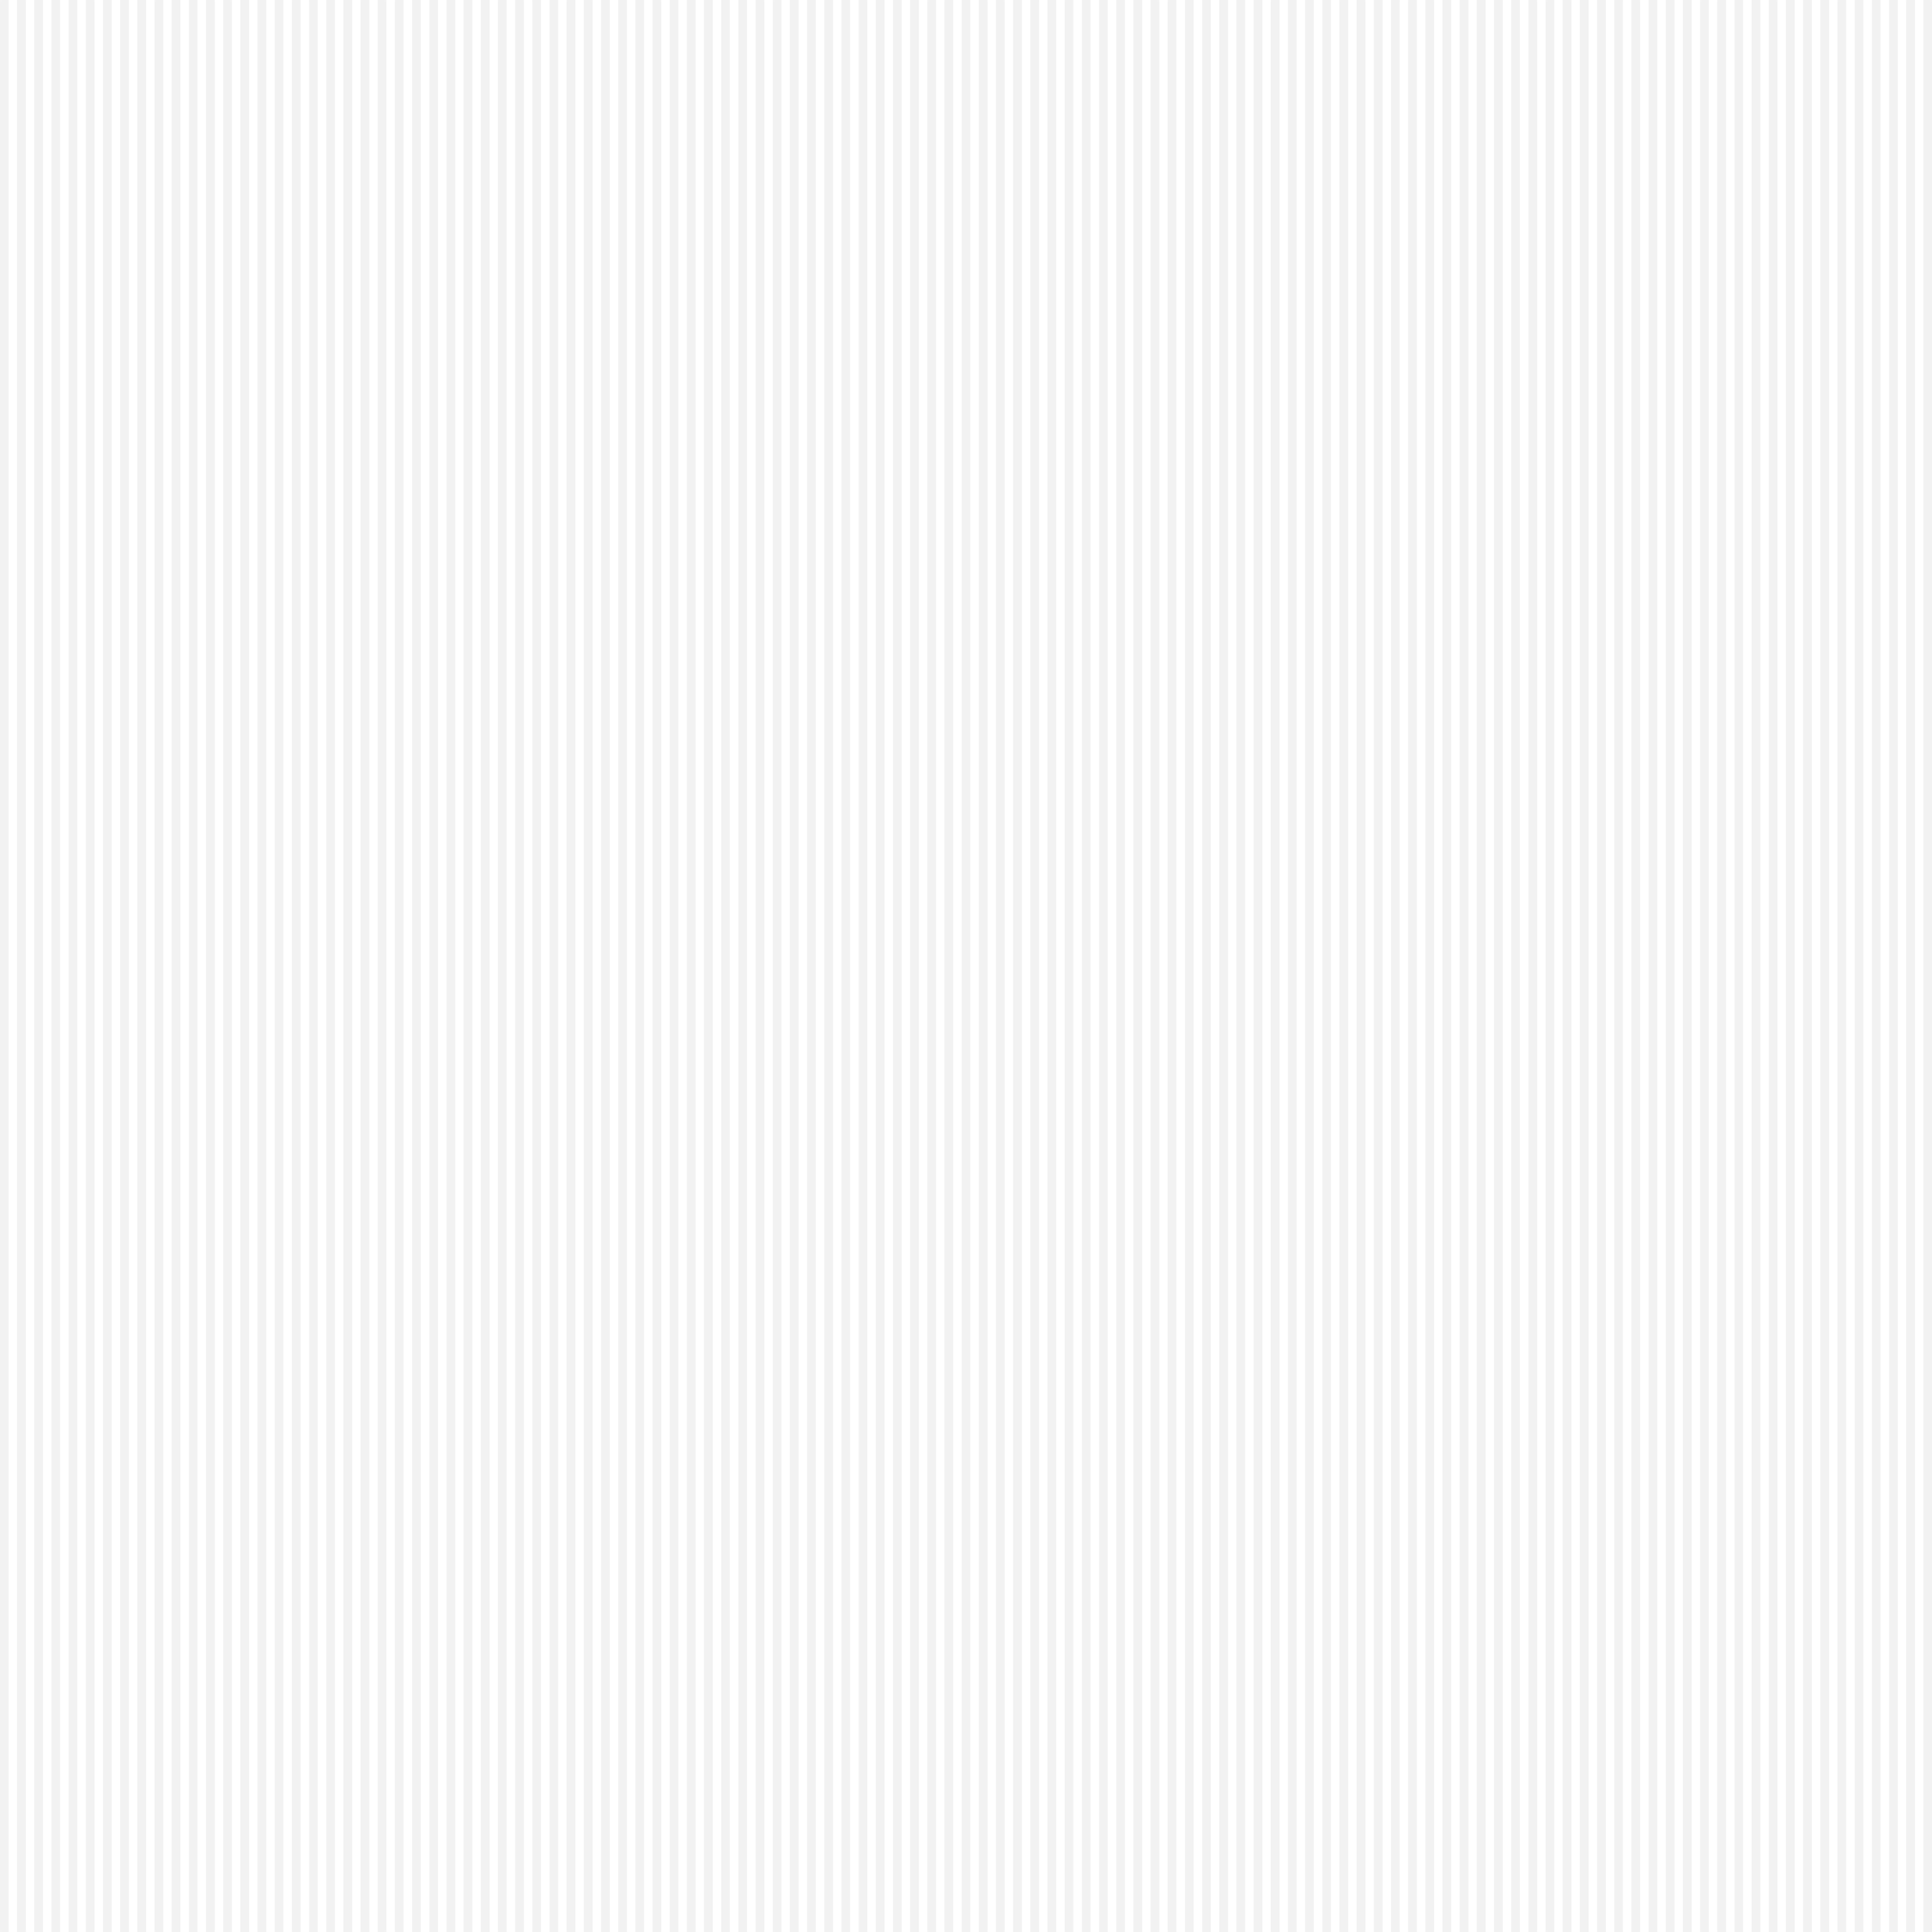 vertical lines png